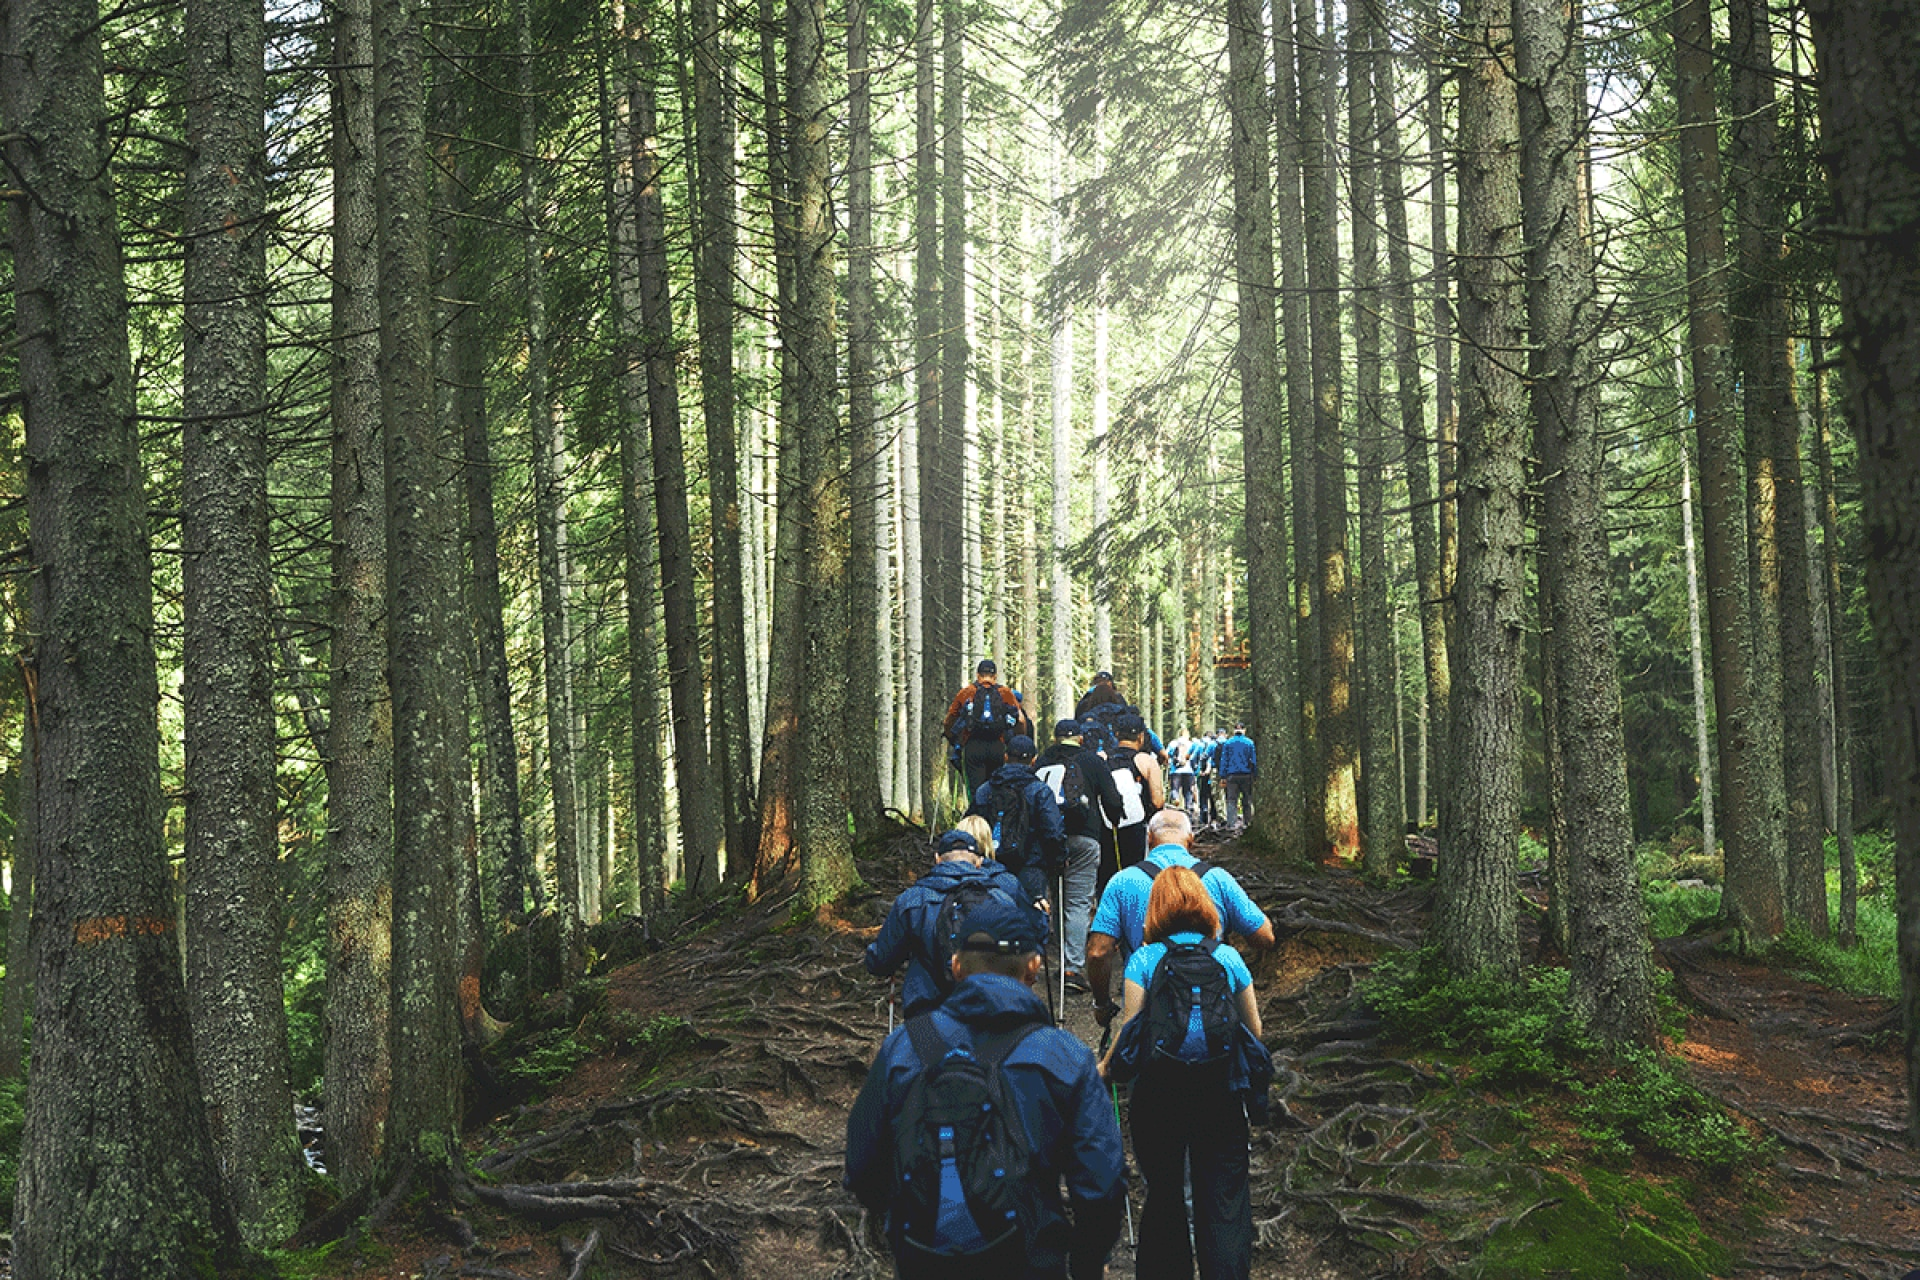 group hiking in forest